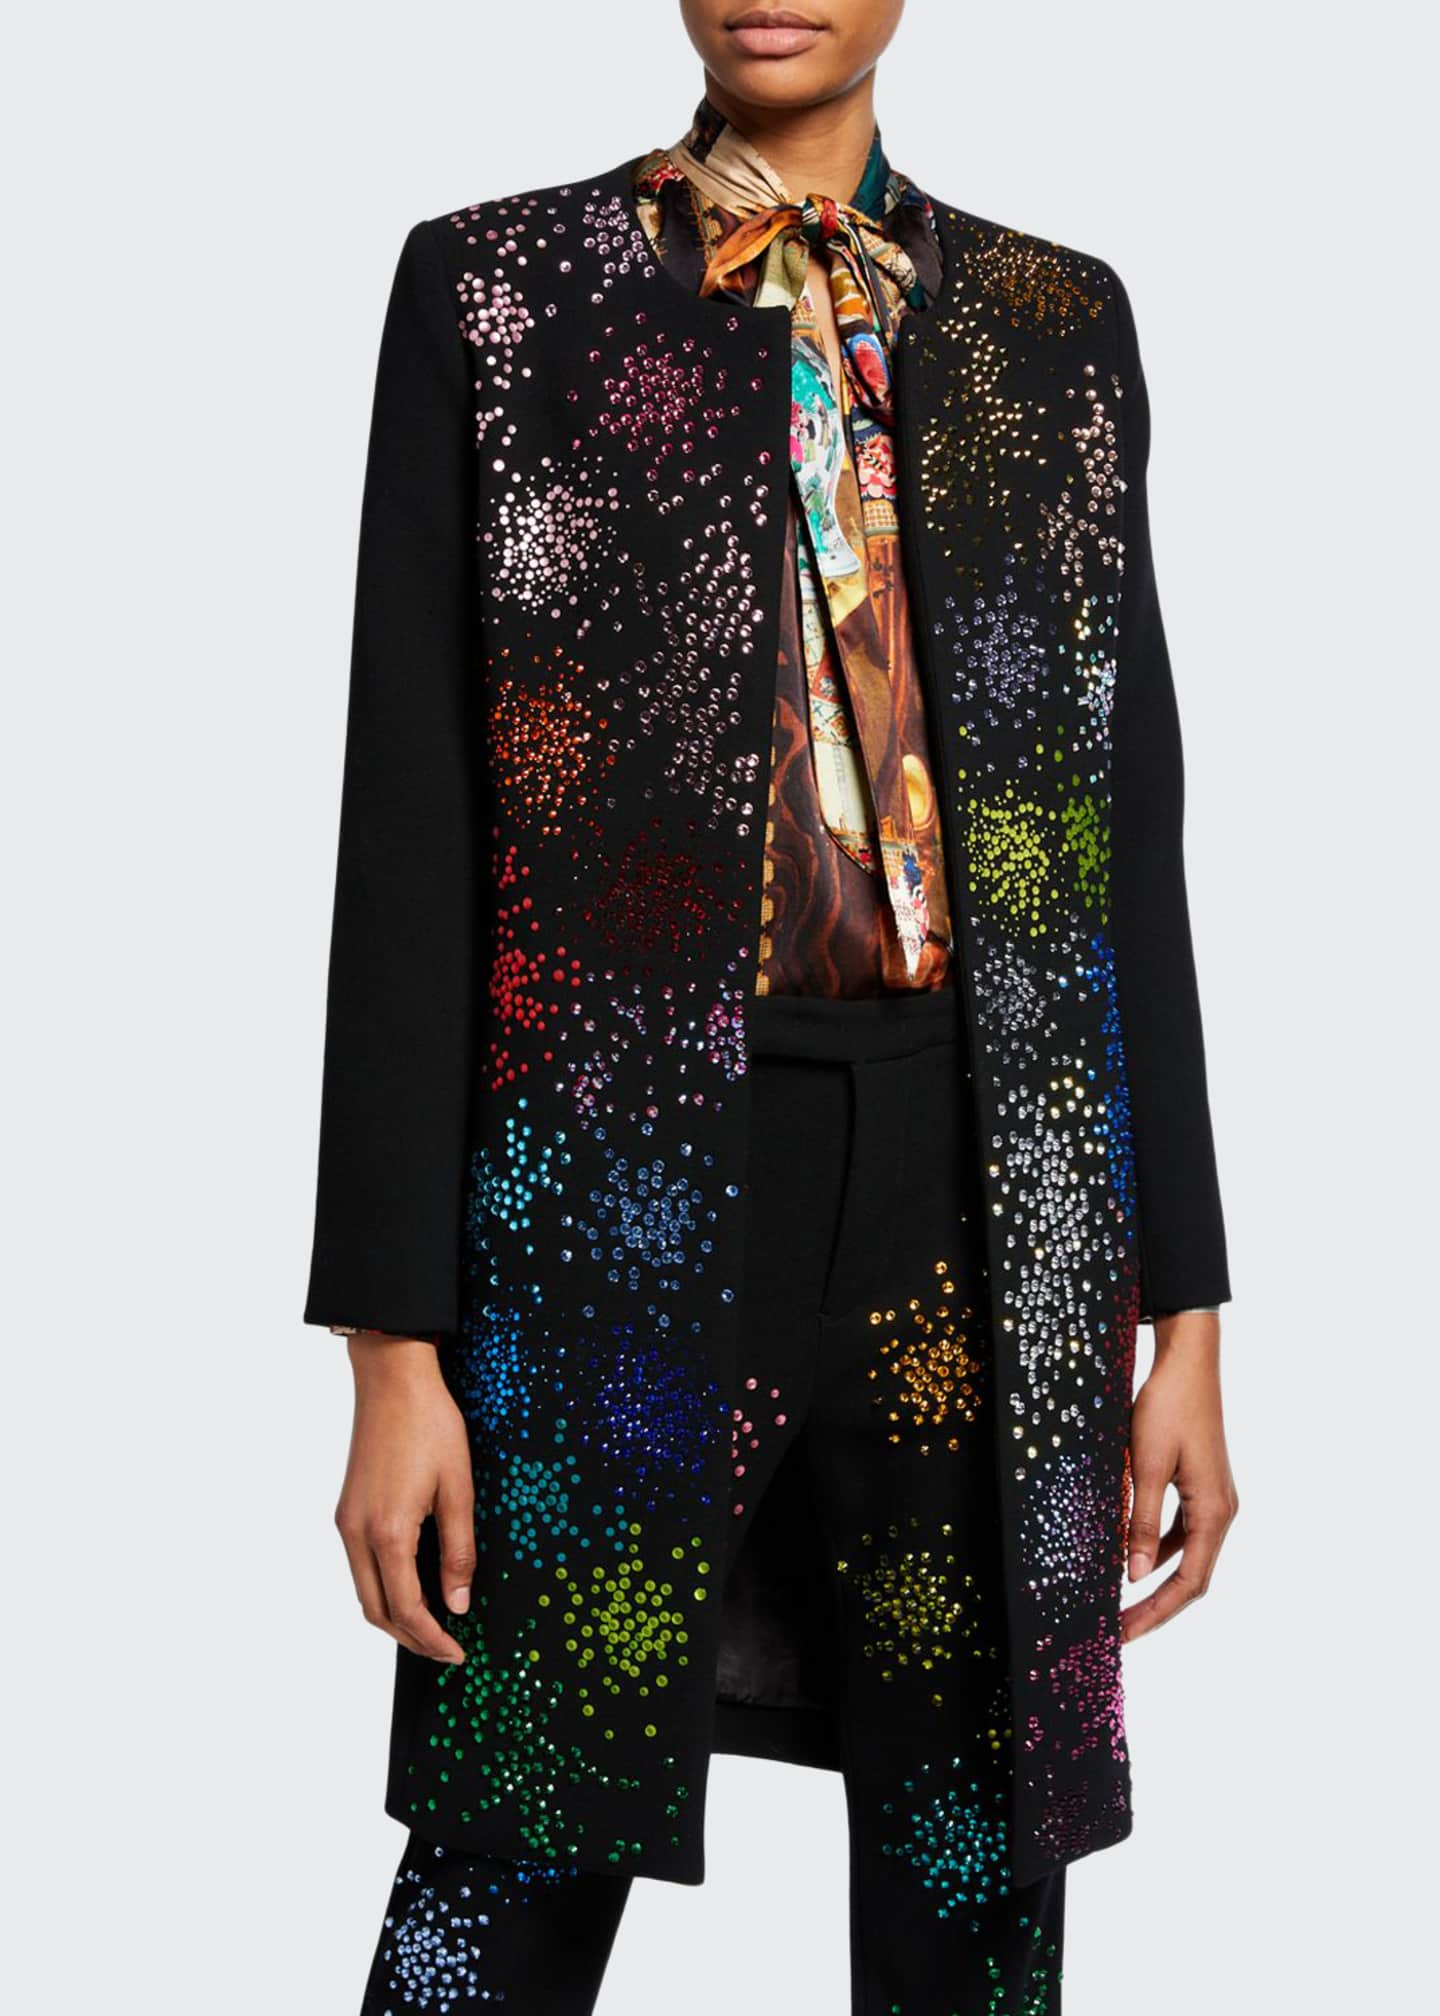 Libertine Mo' Monet Mo' Problems Bead-Embellished Duster Coat